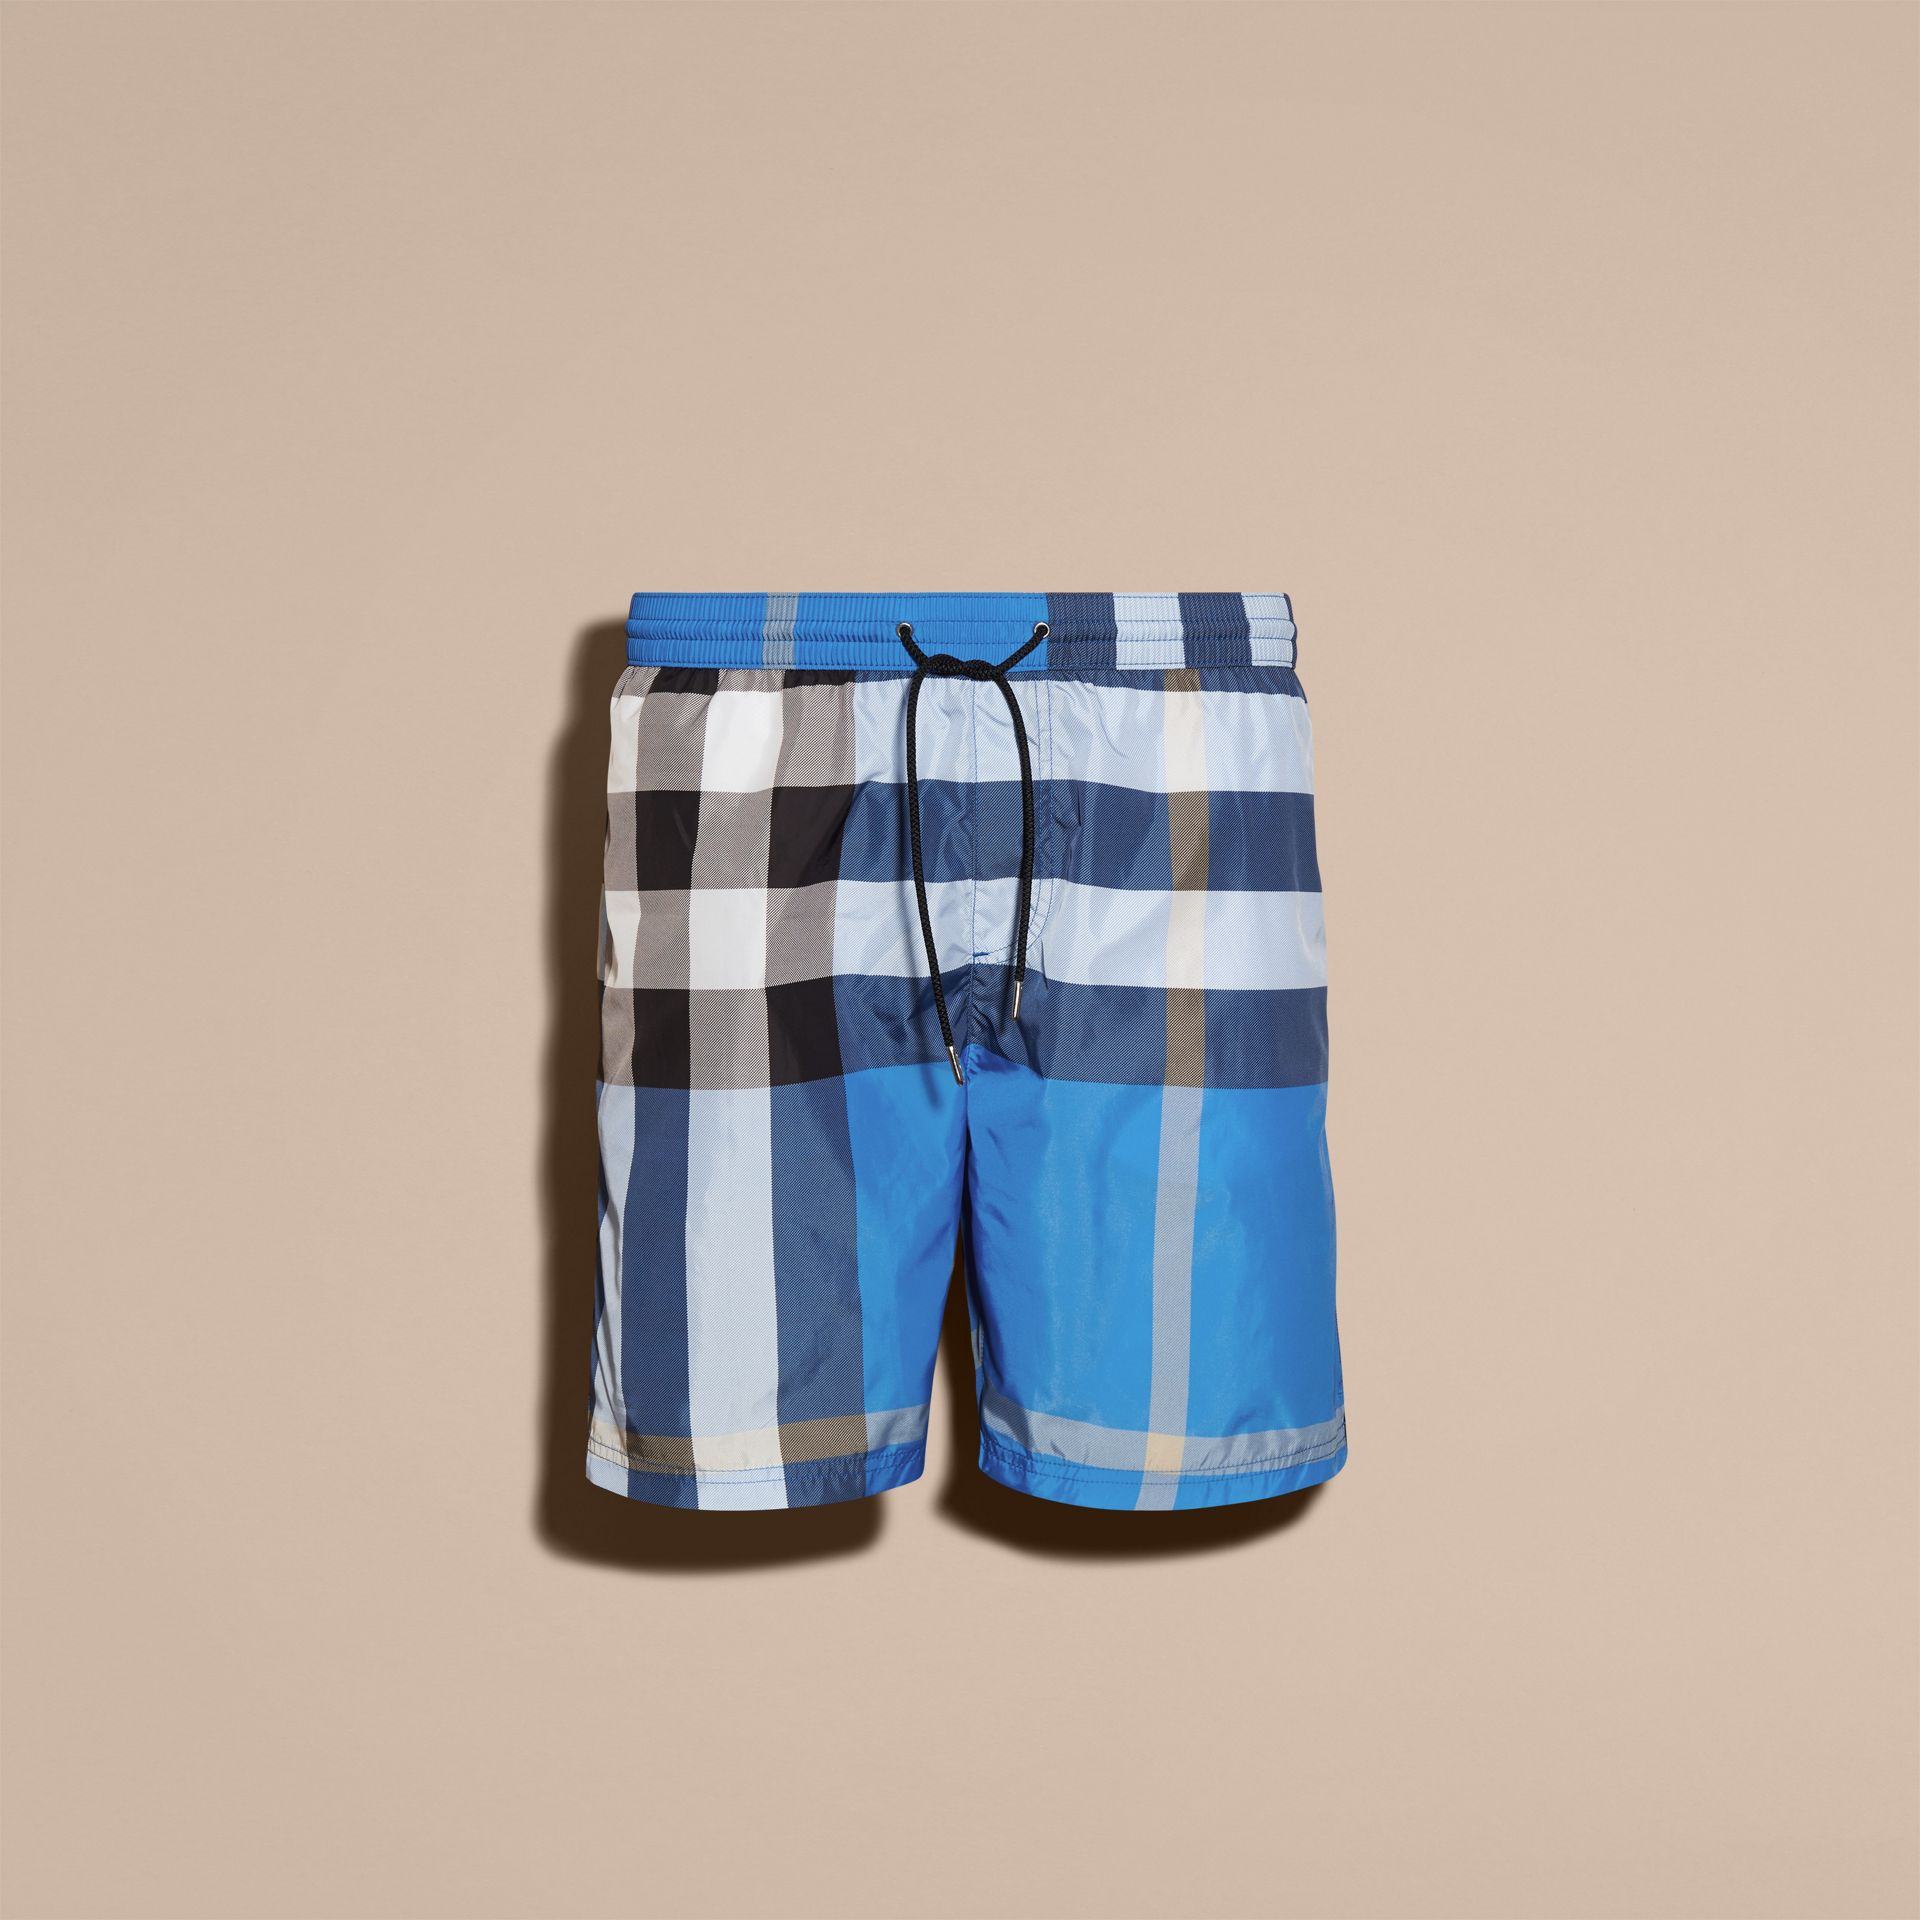 Short de bain à motif check (Bleu Azur) - Homme | Burberry - photo de la galerie 4